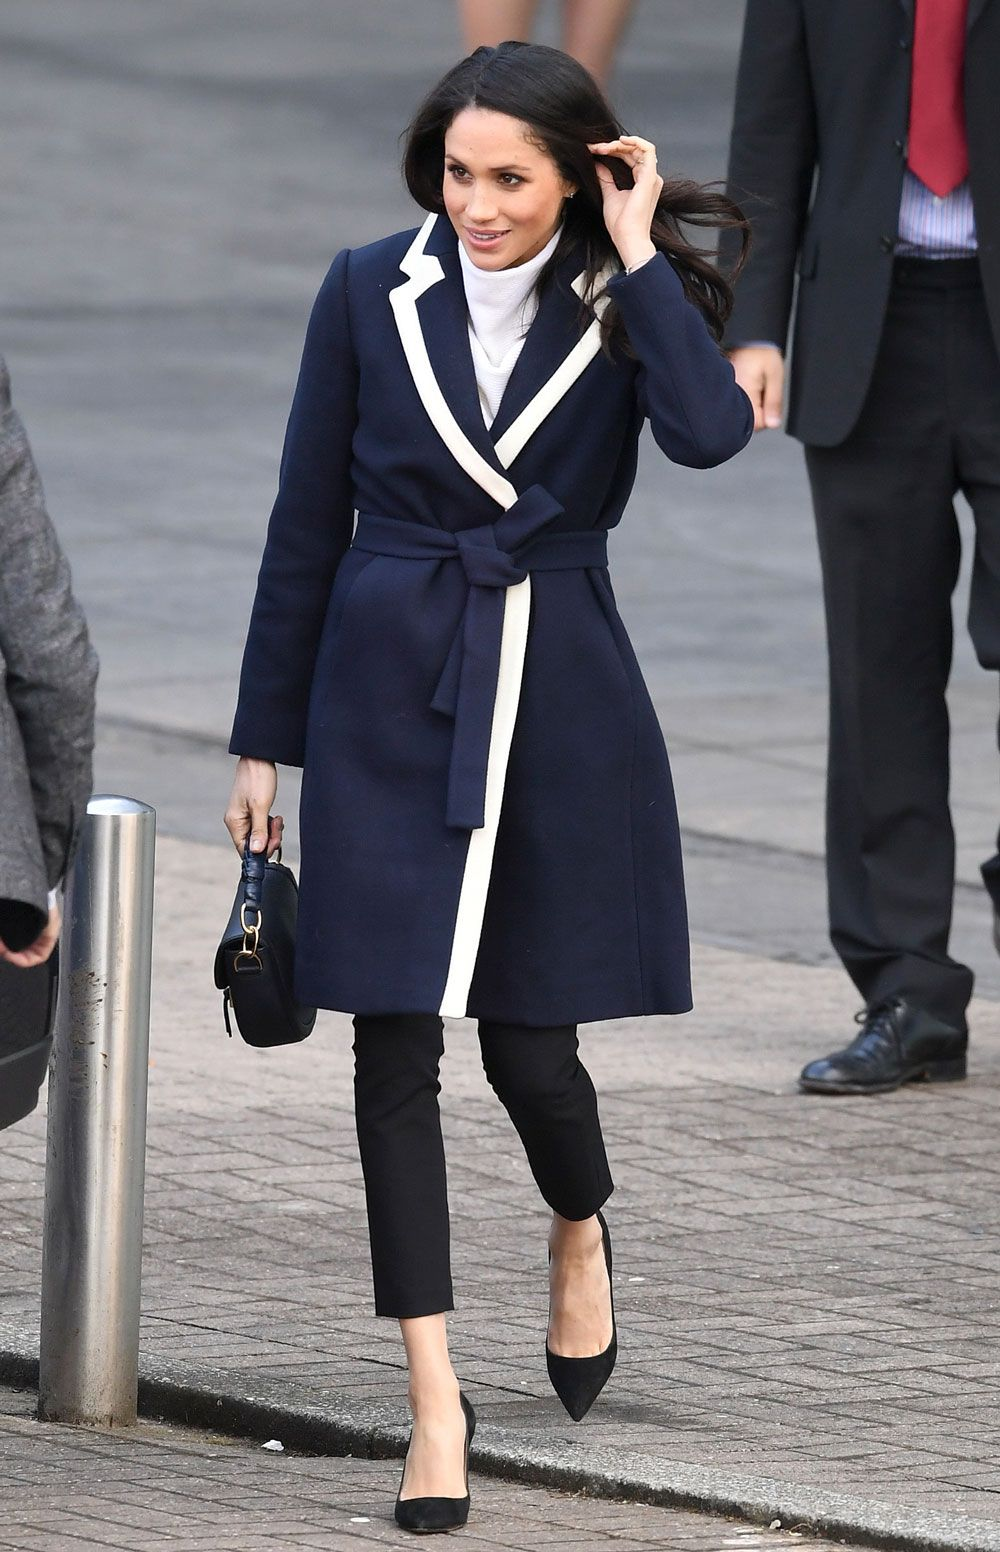 fe9e68b8f495 Meghan Markle s best style moments - what Meghan Markle is wearing